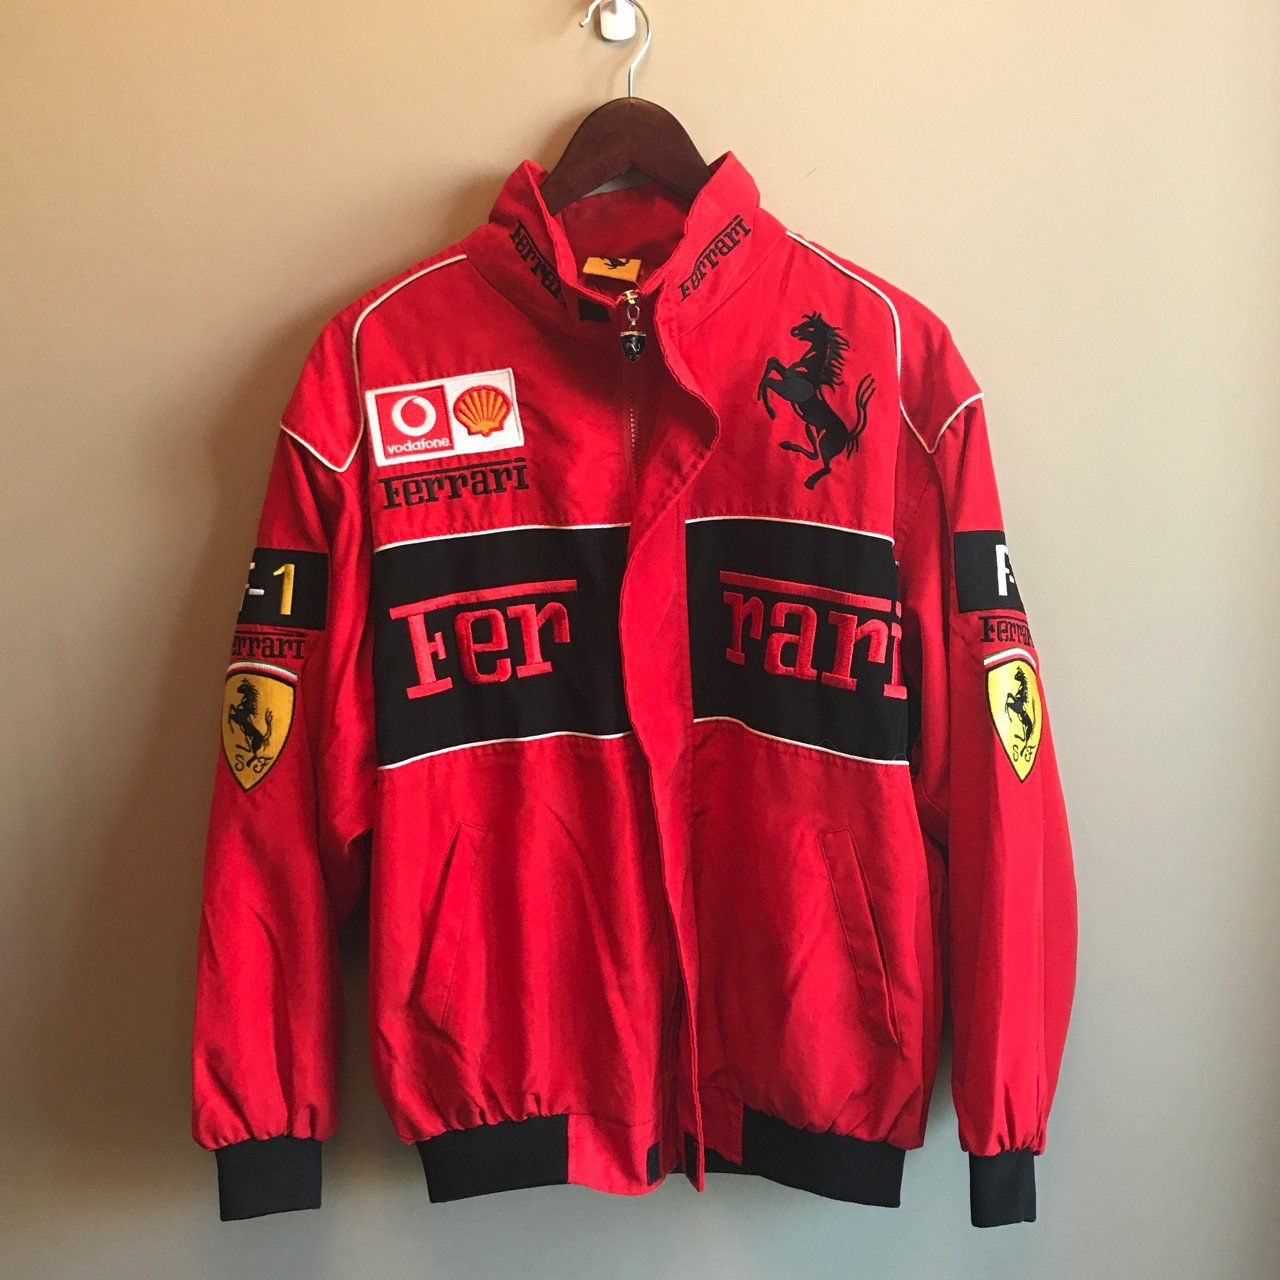 Vintage Ferrari Jacket Amazing Condition And Very Rare Retails For Around 100 No Size Shown But Probably Jacket Outfit Women Vintage Racing Jacket Jackets